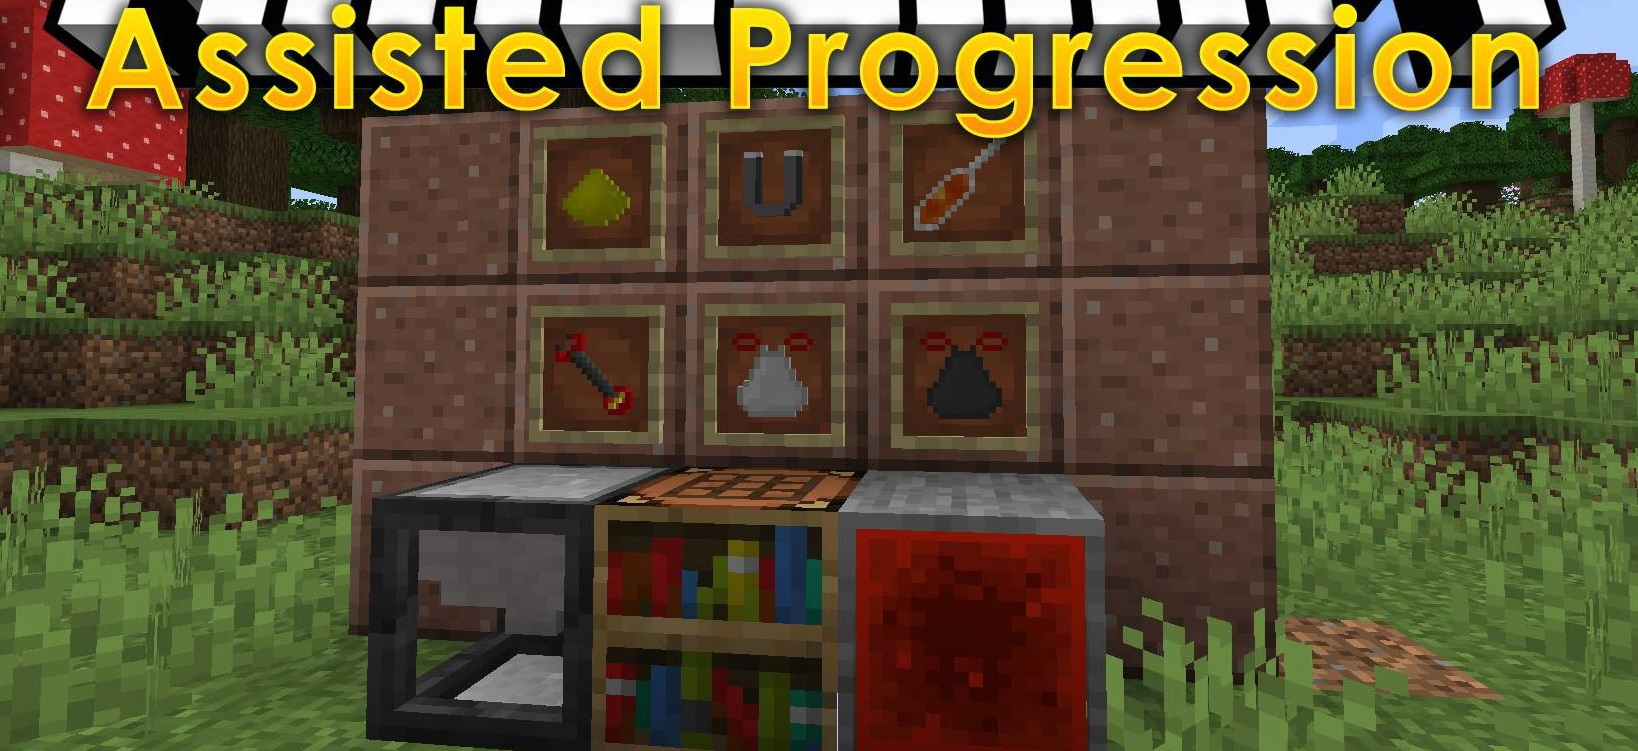 Assisted-Progression-mod-for-minecraft-logo